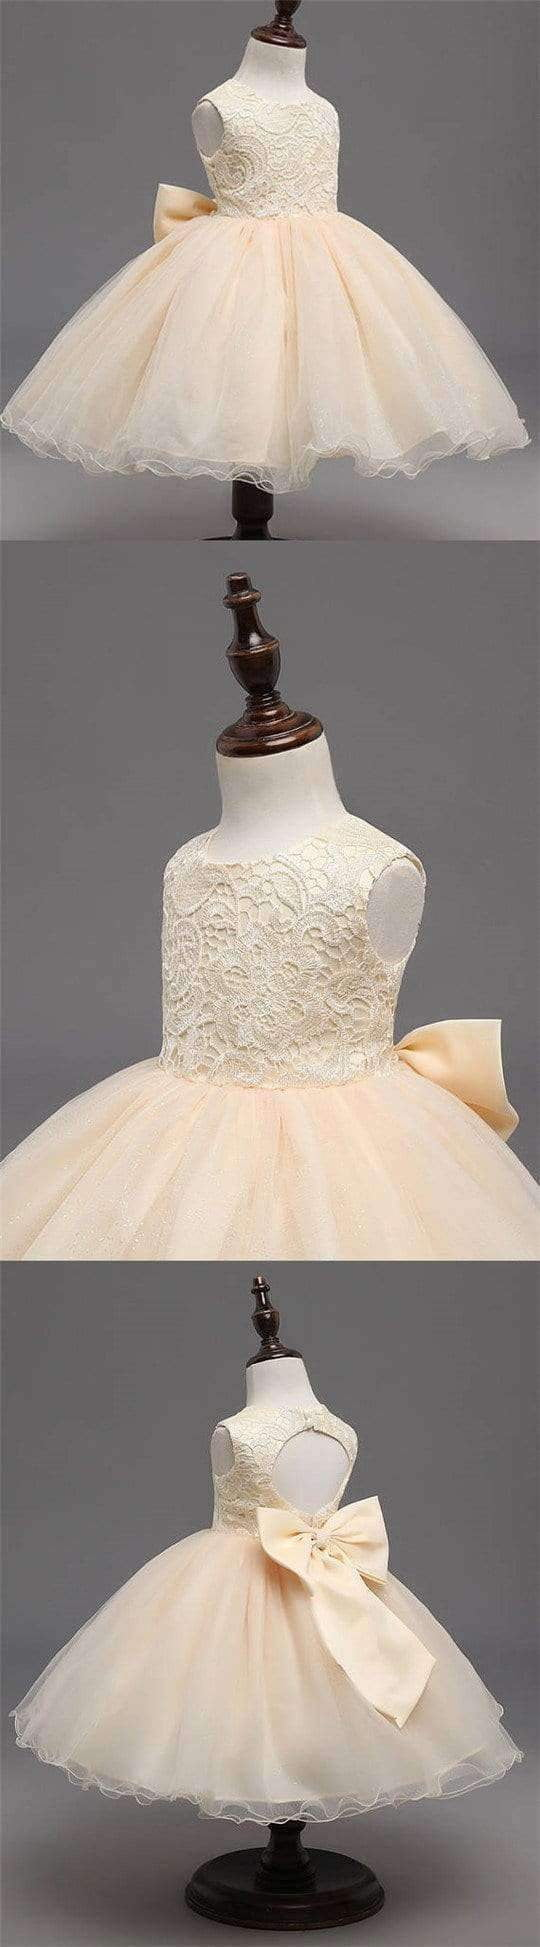 Beige Lace Top Sleeveless Flower Girl Dresses, Popular Tulle Flower Girl Dresses,  FG039